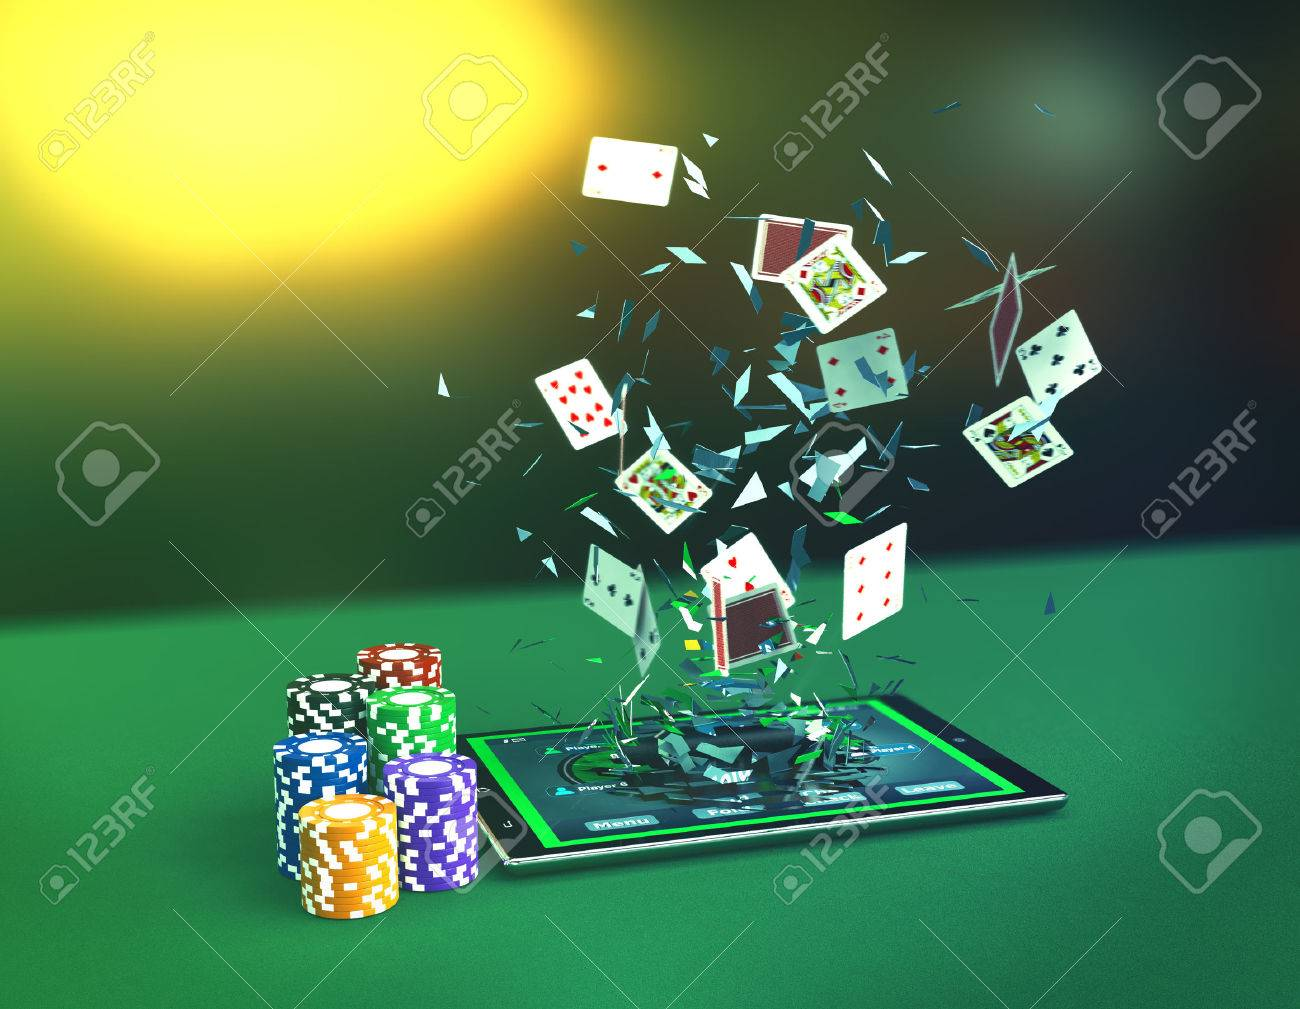 Tablet pc with a poker app in a winning situation, empty space.